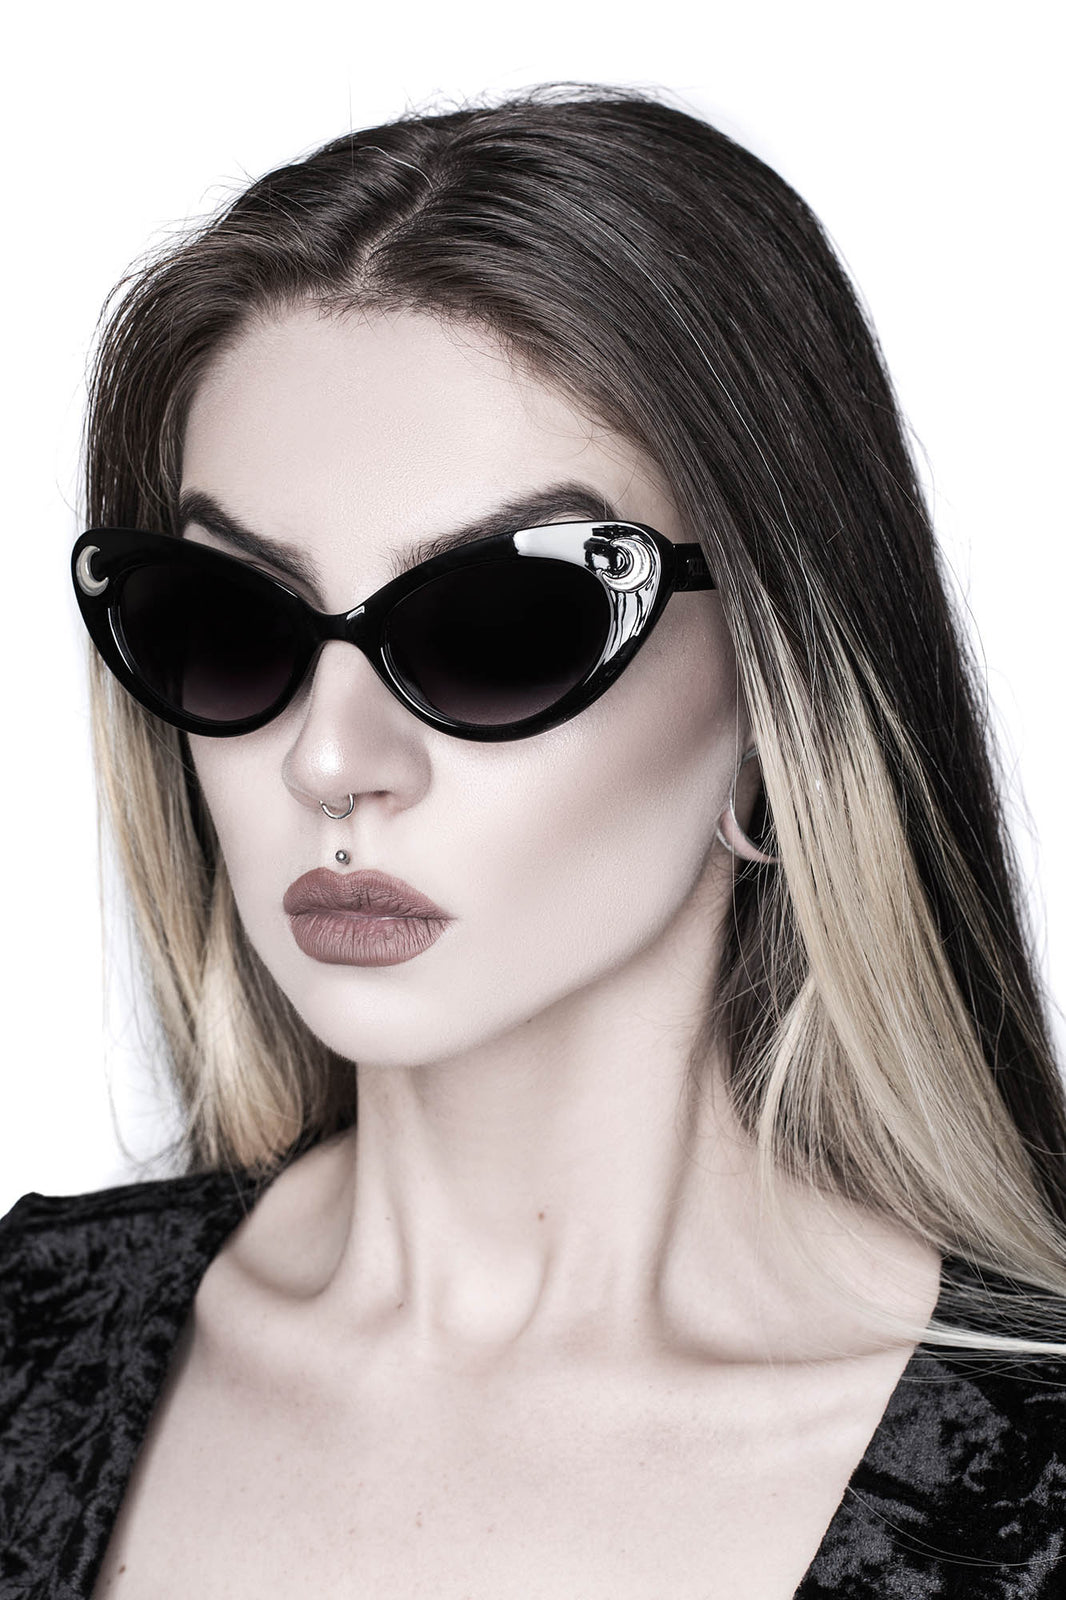 Cosmic Shade Sunglasses [B]